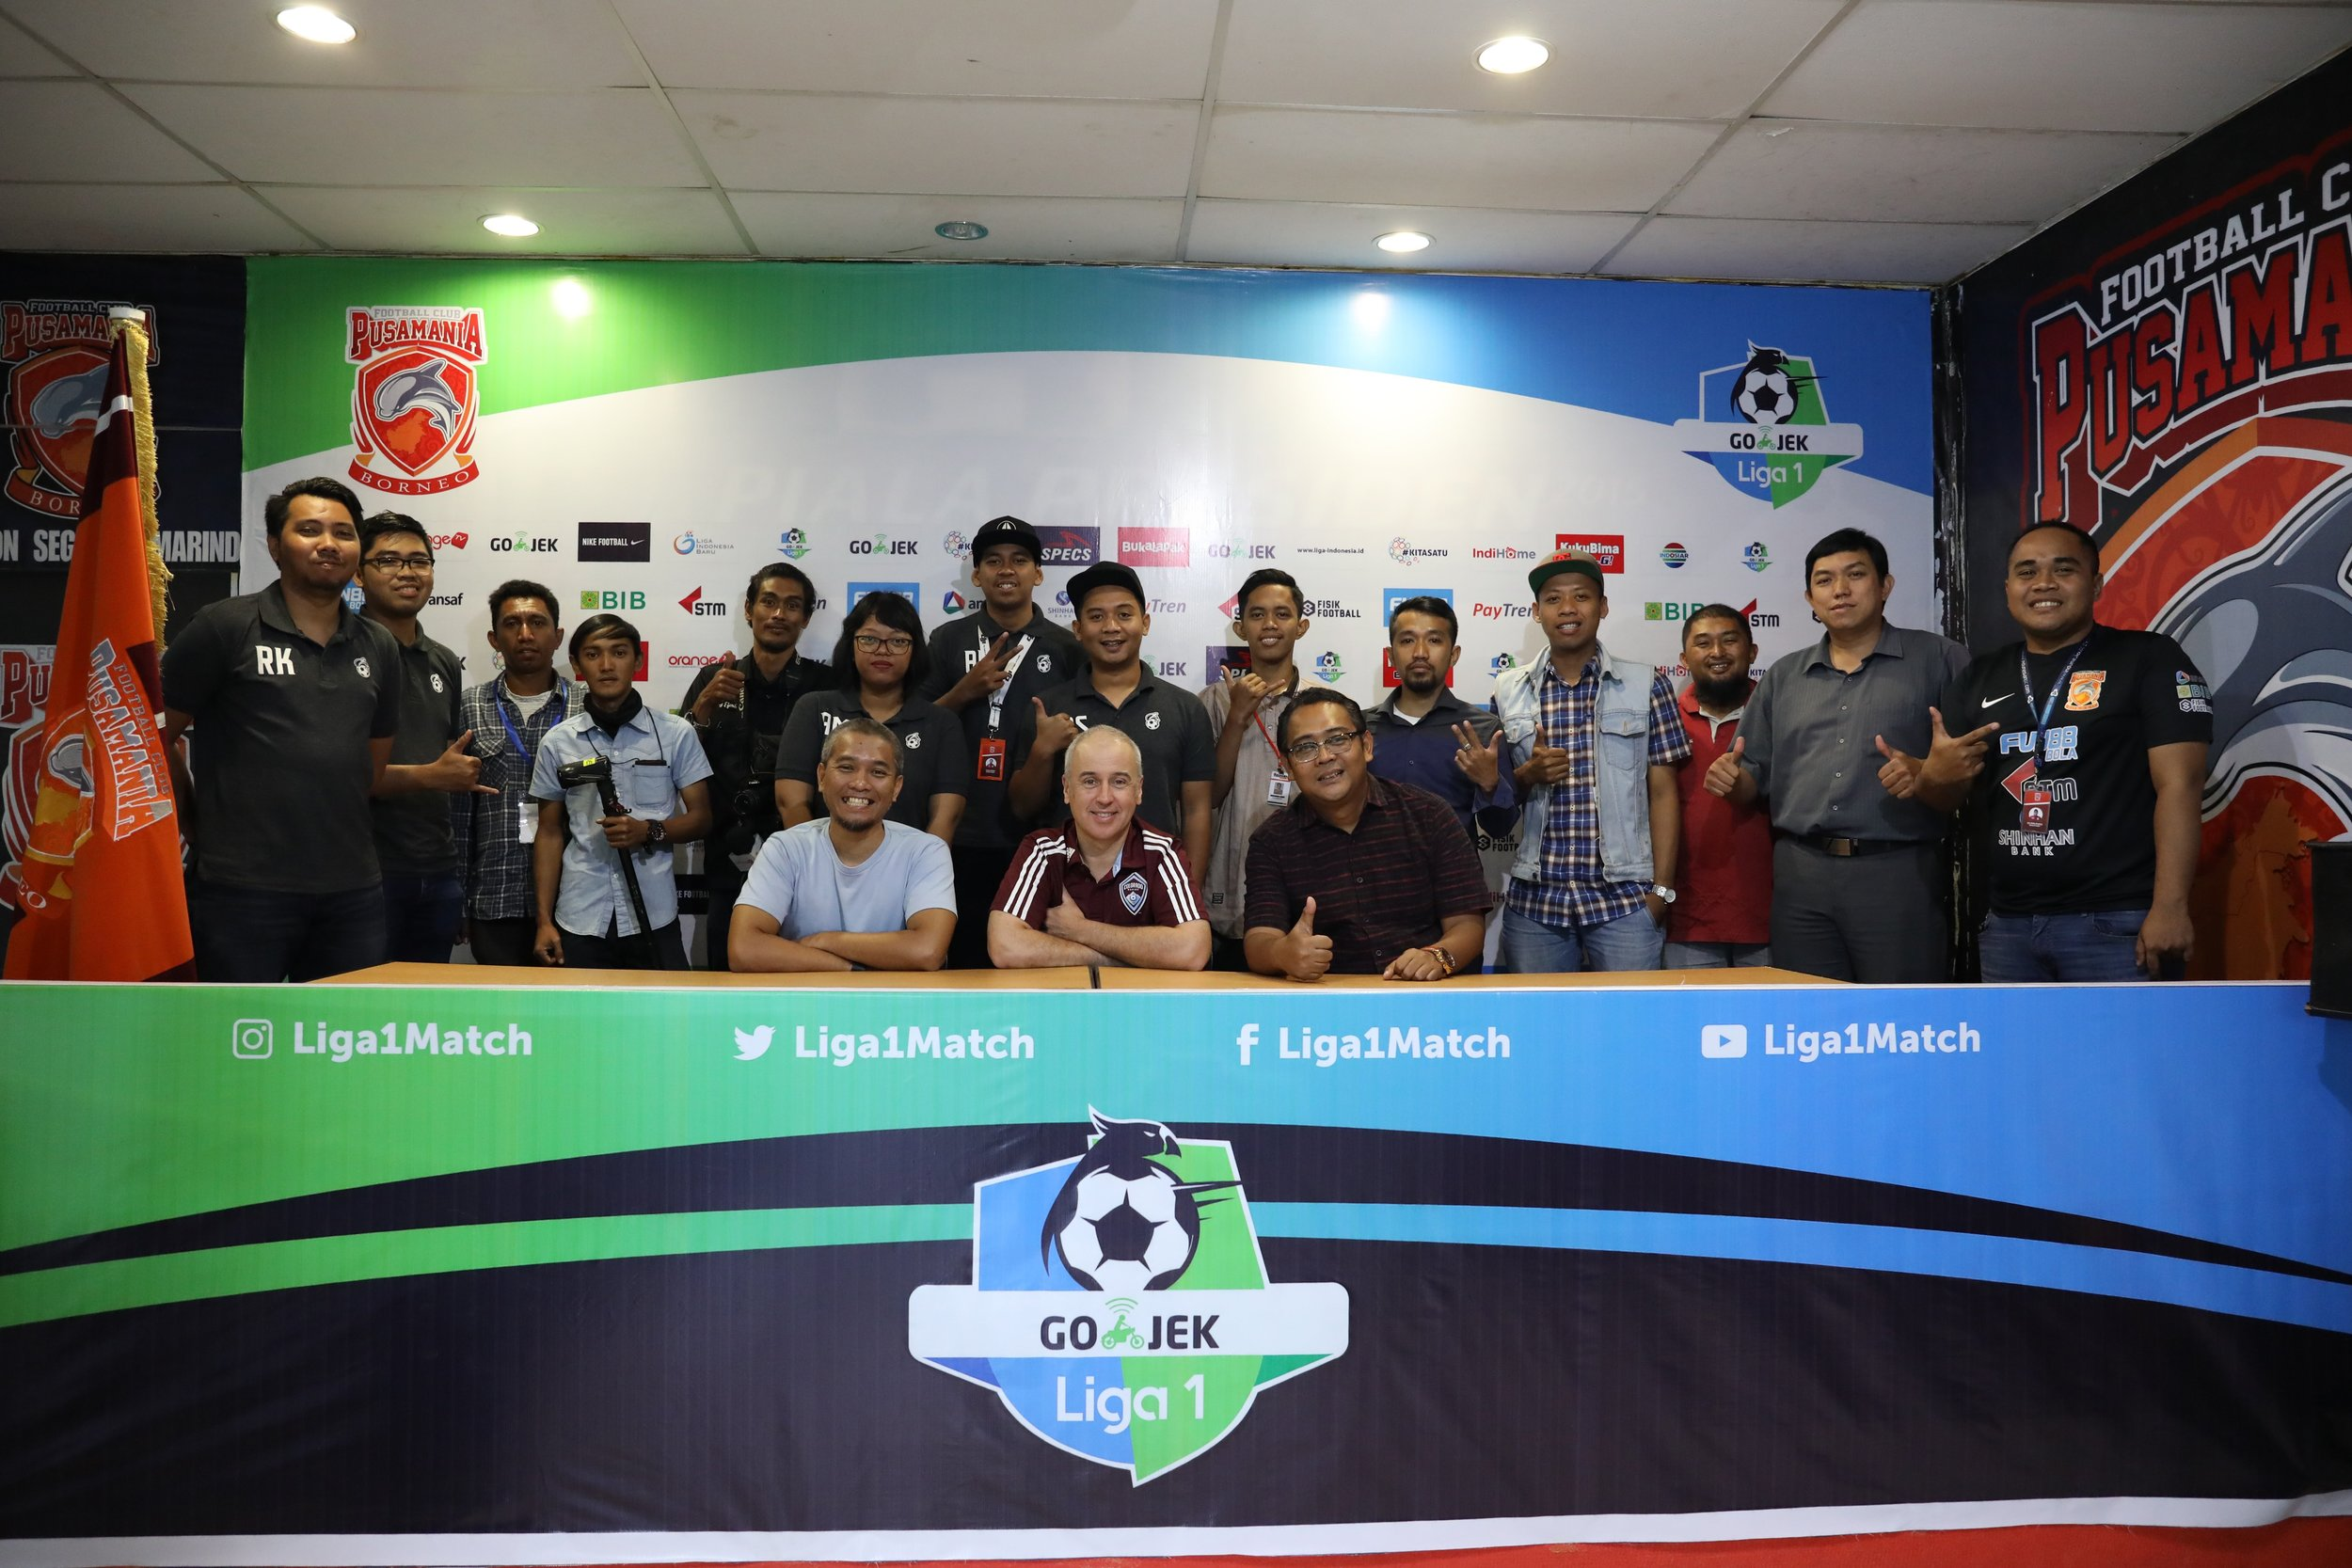 With the digital and social media teams of Borneo and Mitra Kukar on the island of Kalimantan